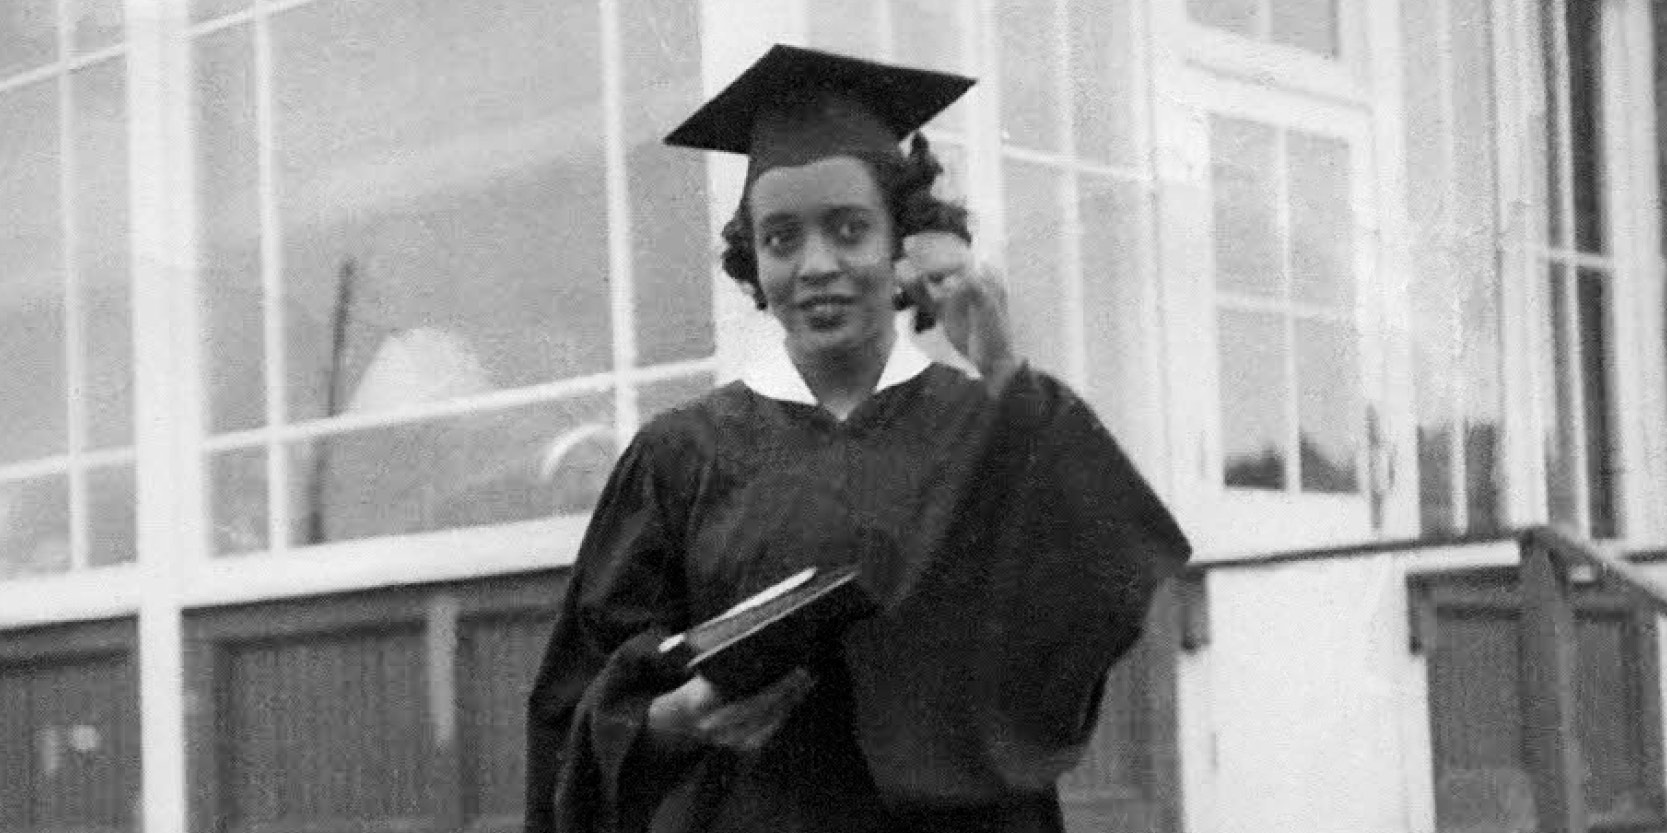 Winifred Parker worked as a microbiologist after graduation and later completed a master's degree in order to work as a career counselor and advocate for the physically challenged.